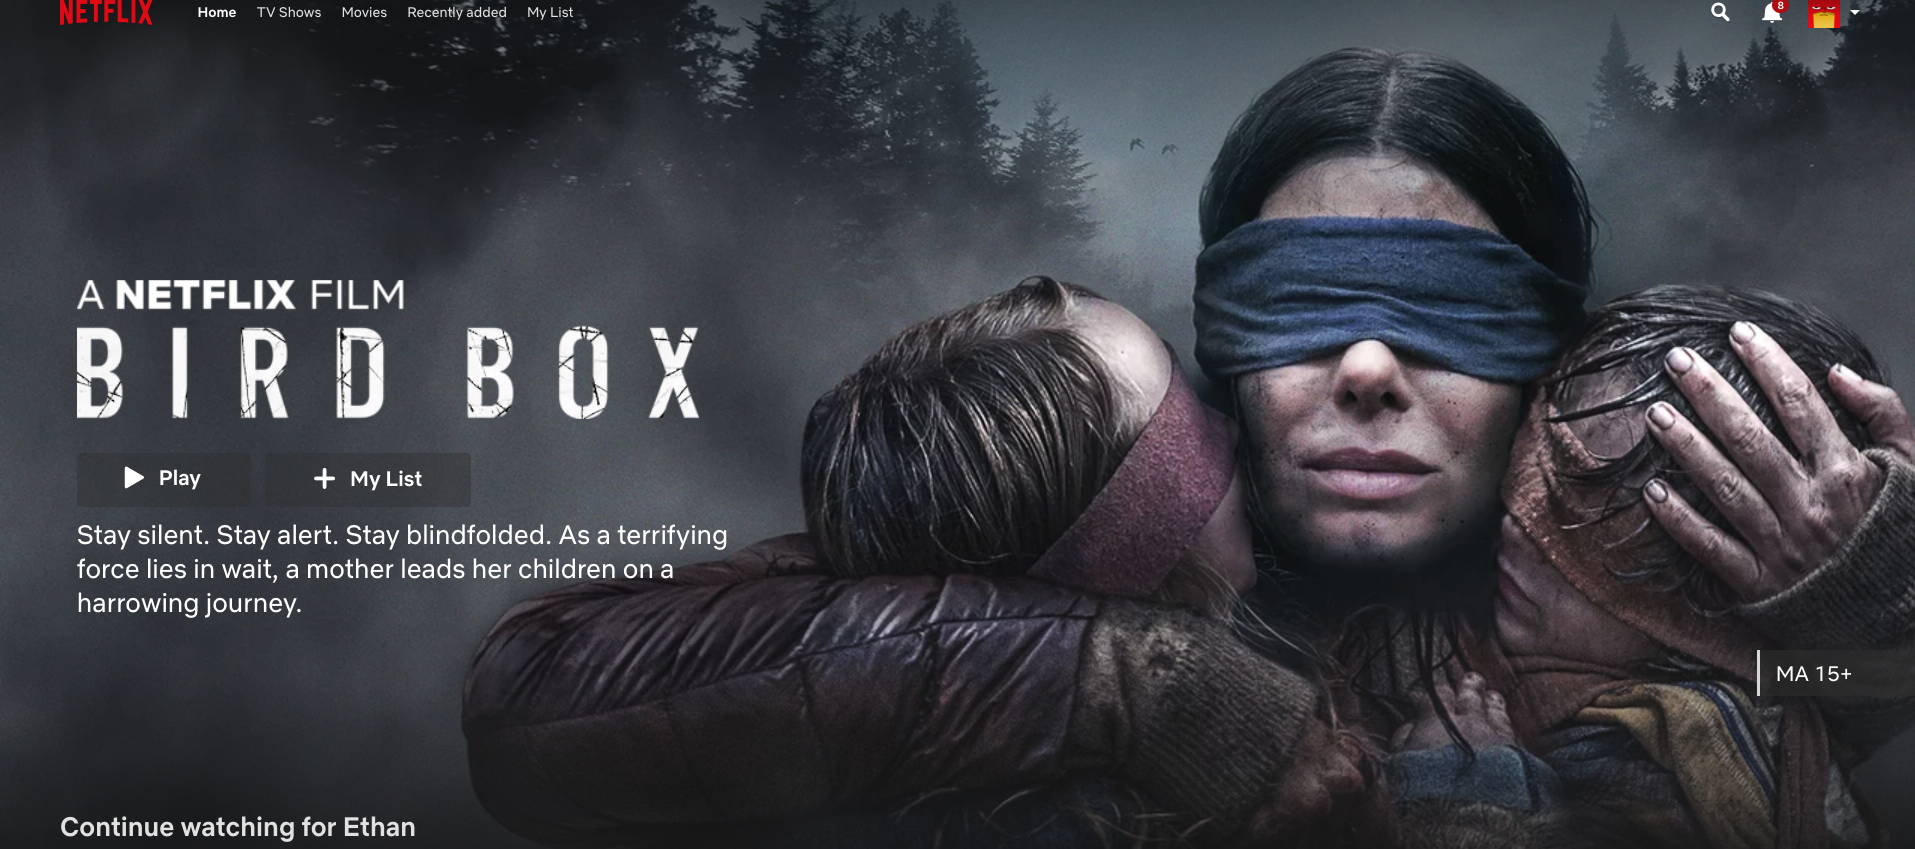 Why Bird Box Did So Well & How To Replicate Its Success